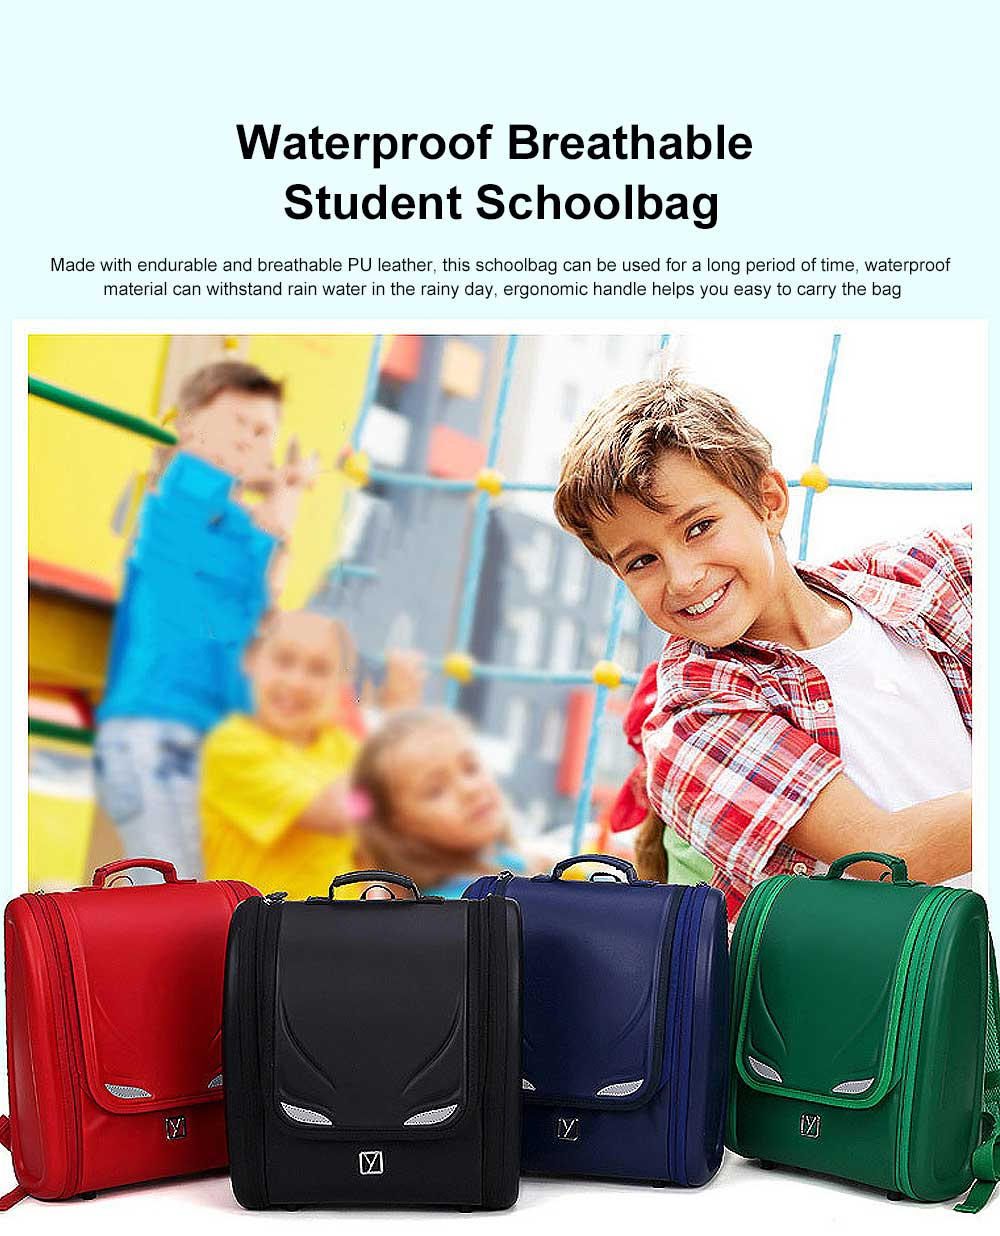 Student Schoolbag with High Capacity Waterproof Breathable Ergonomic Design for 6 to 9 Year Kids School Bag Built in Side Pocket for Boy Girl Gift 0